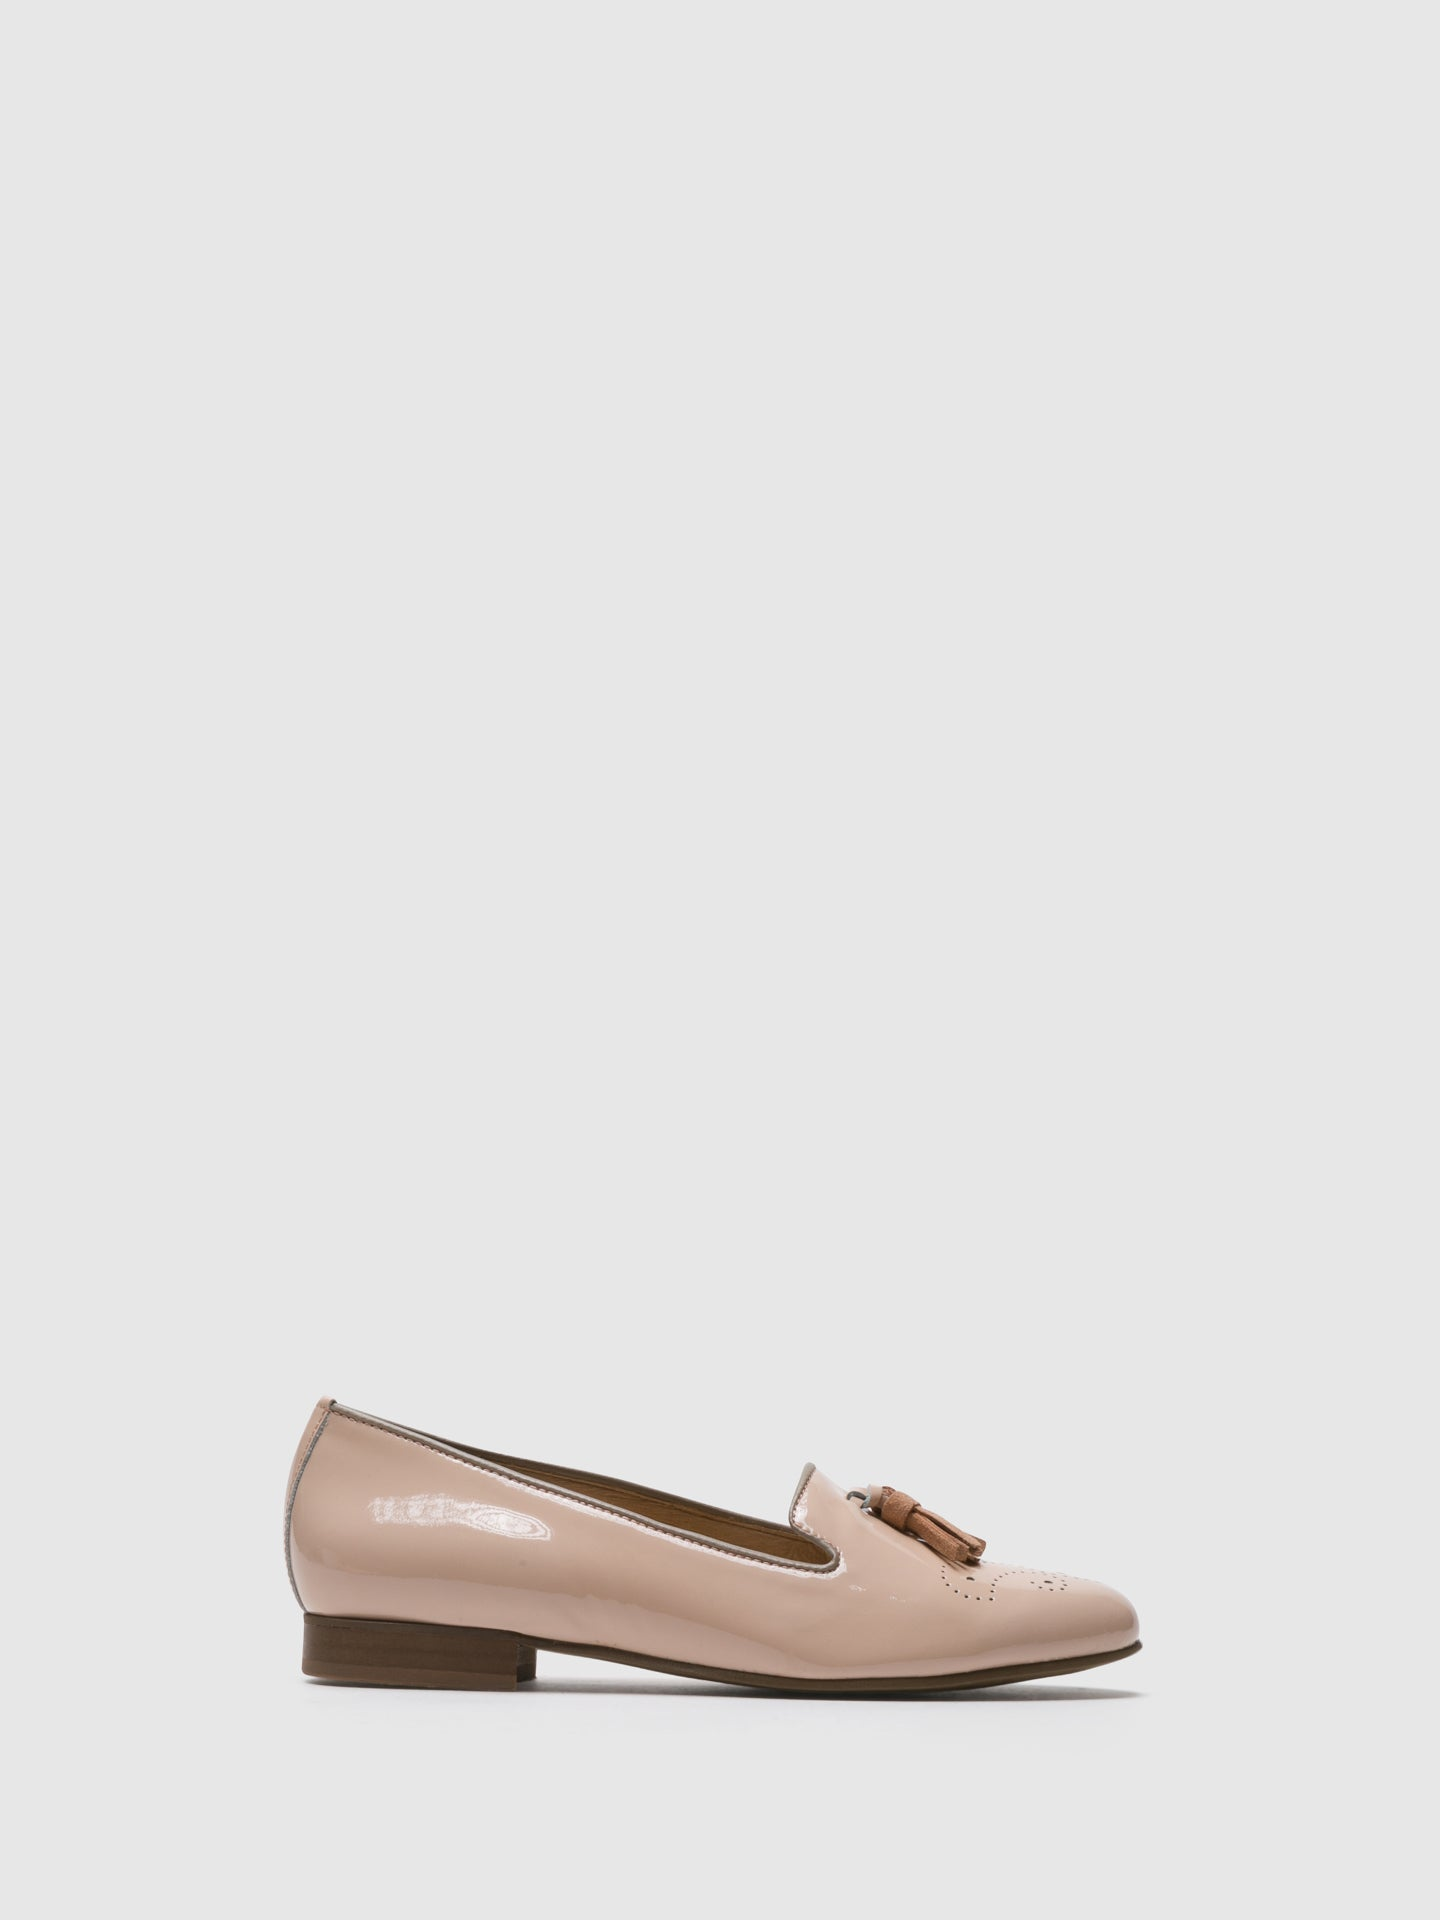 PintoDiBlu Pink Loafers Shoes